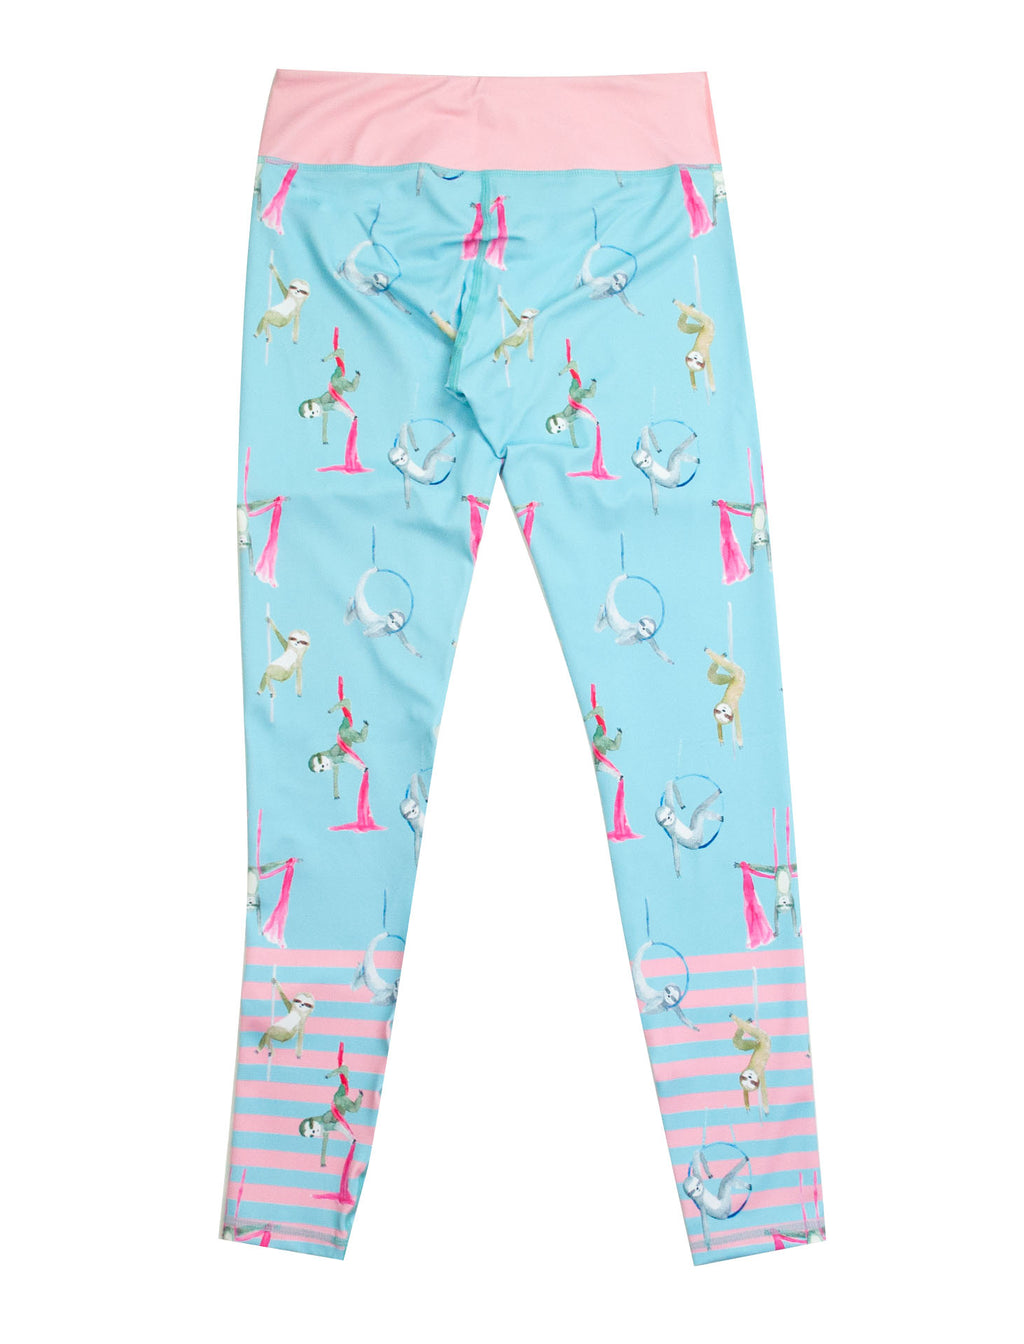 Circus Sloths Full Length Classic Leggings